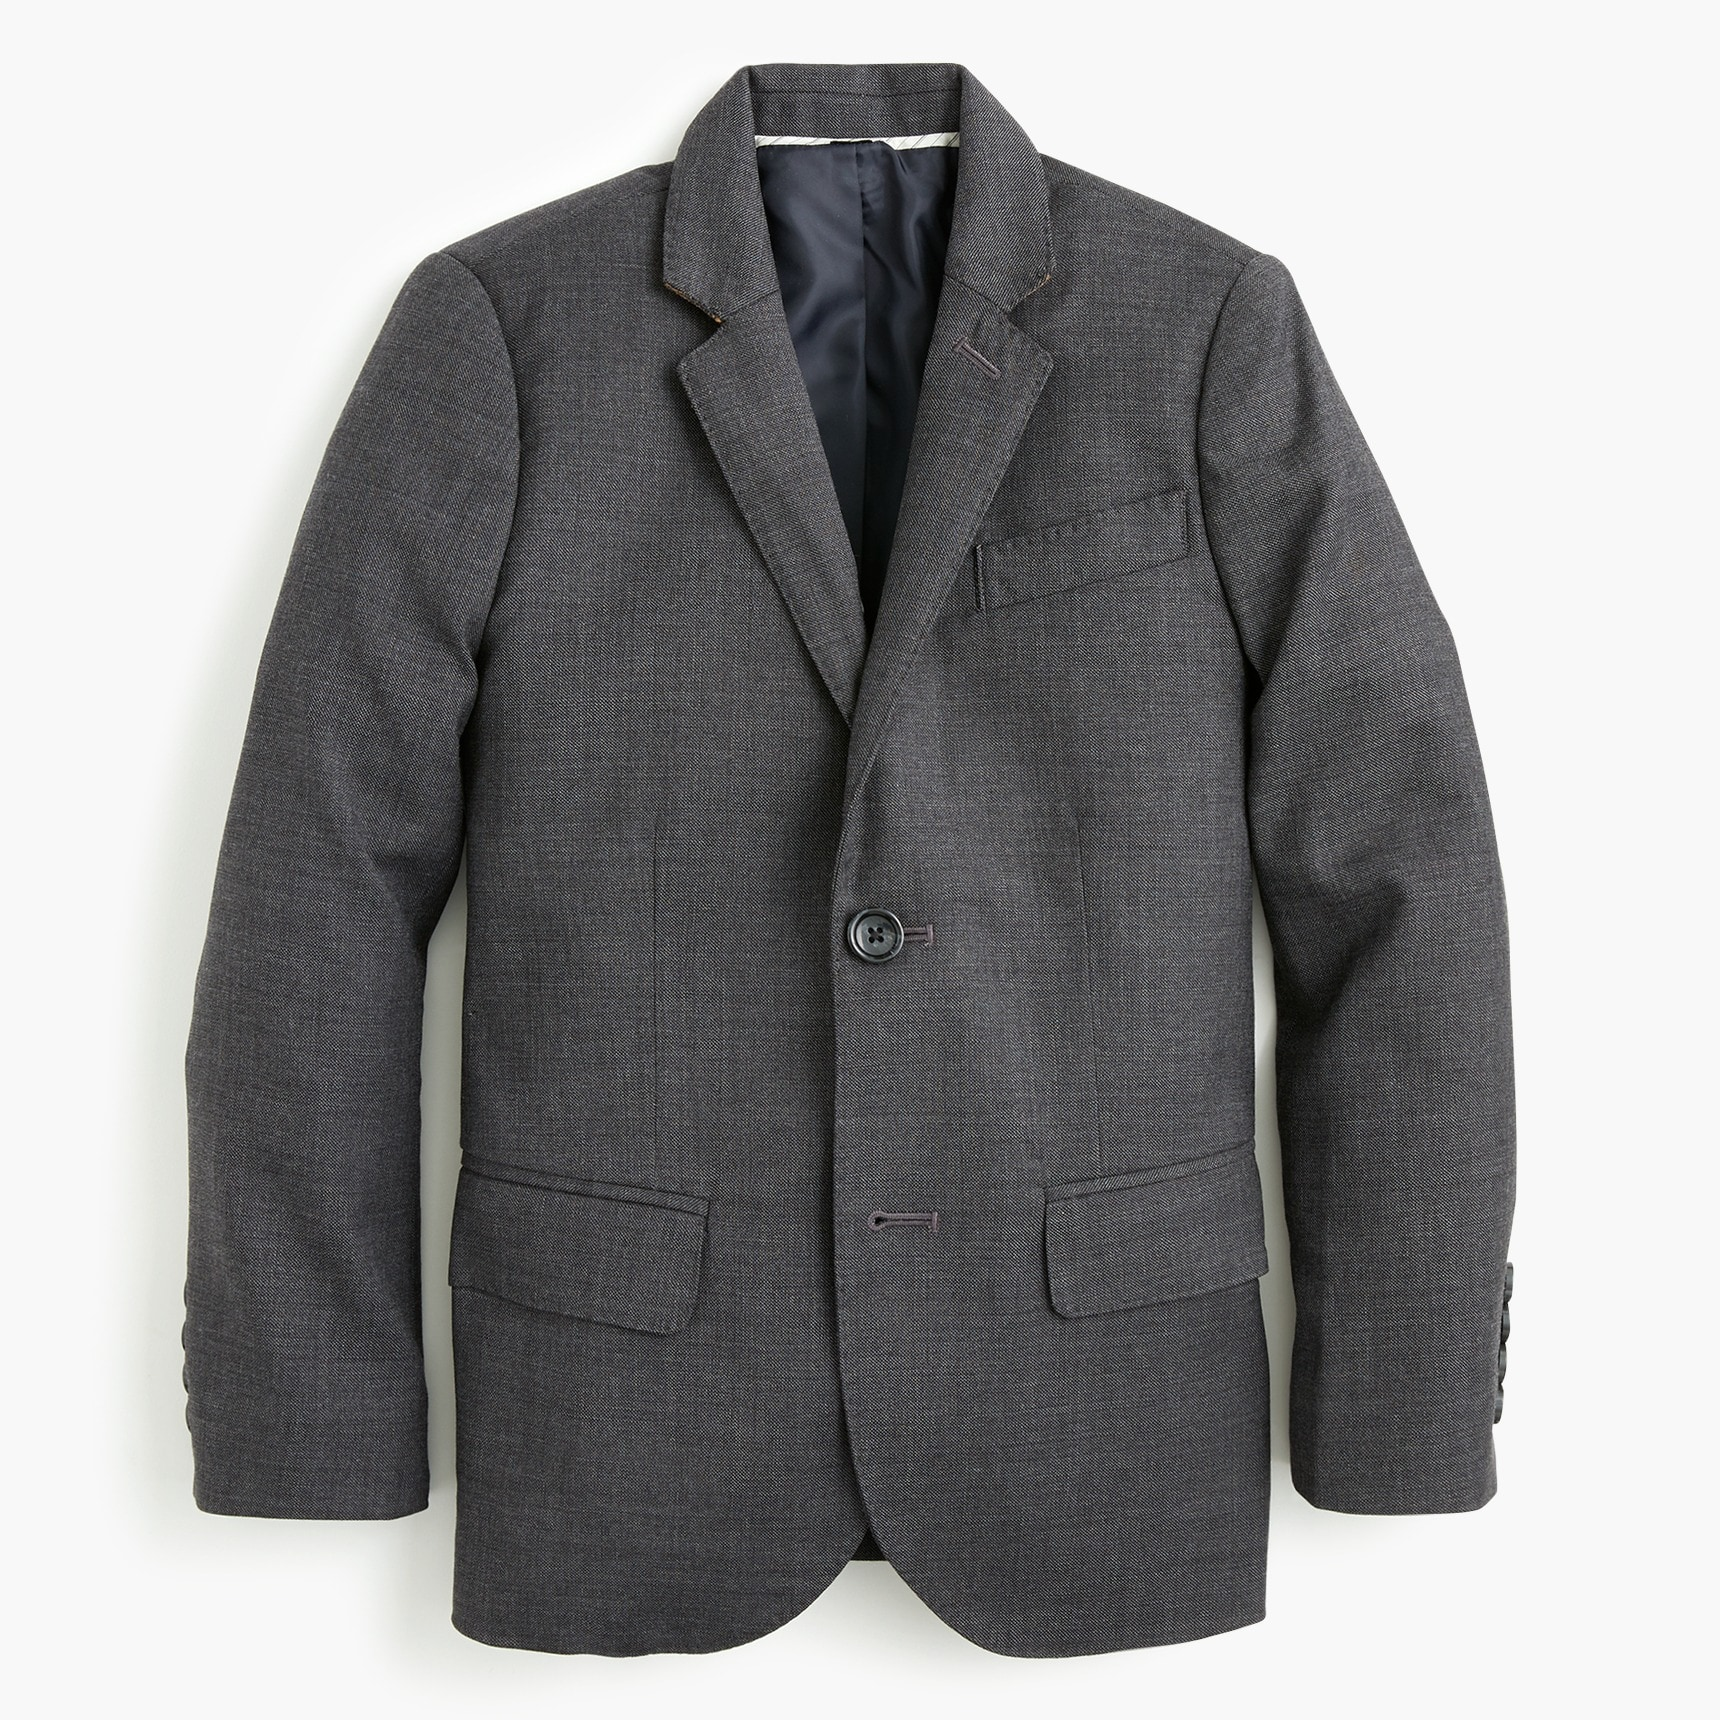 boys Boys' Ludlow suit jacket in stretch worsted wool